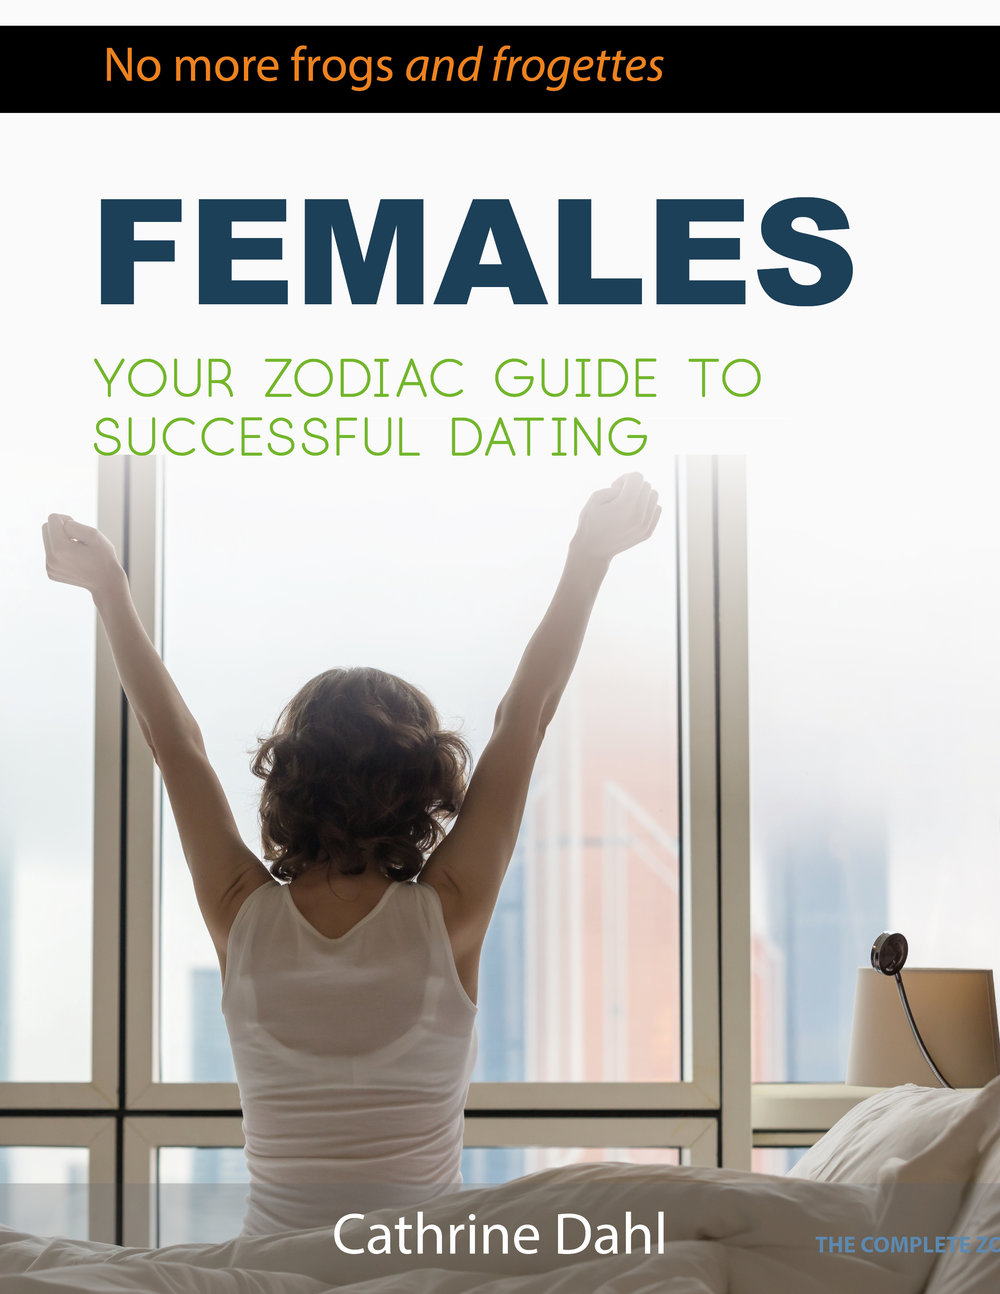 Your Guide to The Females -  Discover the mysteries behind the women in the zodiac and get a head start before going on a date. This complete manual includes all the twelve star signs.Kindle $15.99 | Paperback $ 17.99